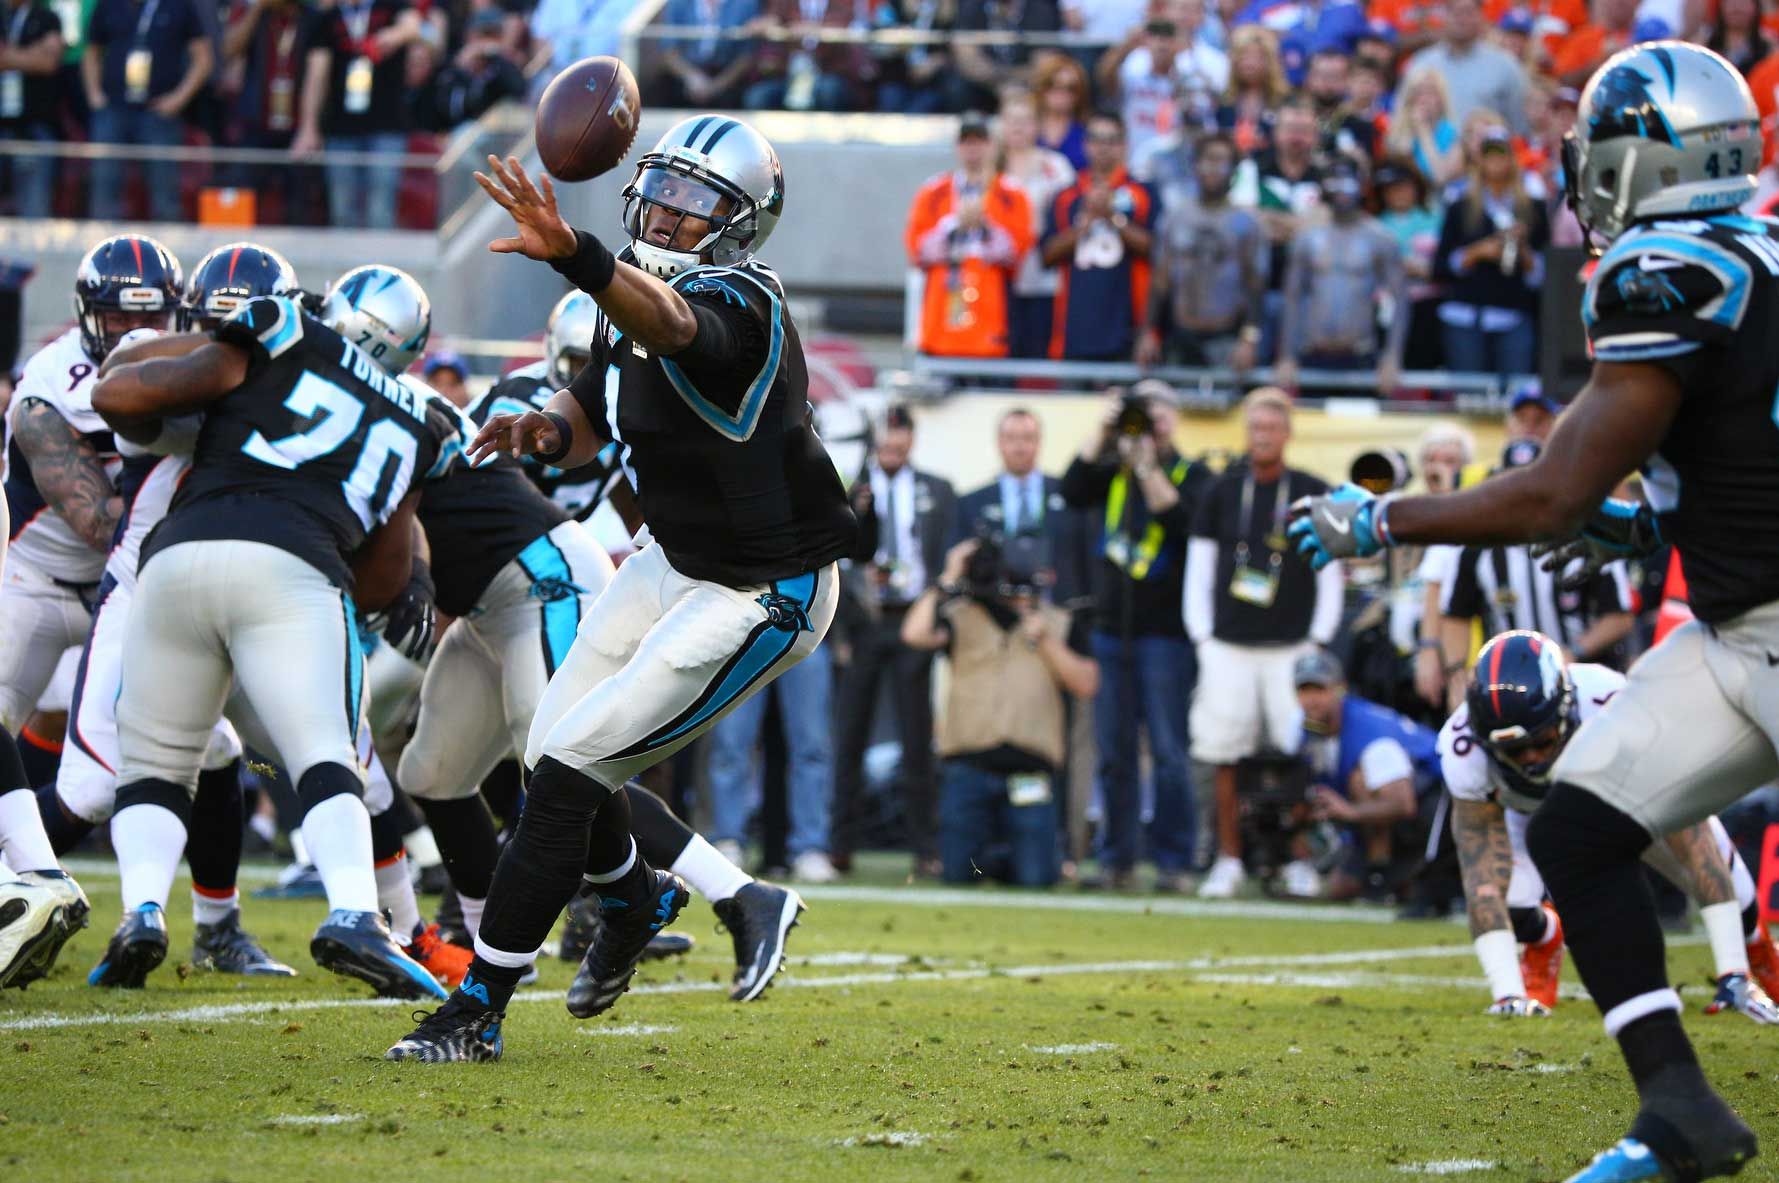 Cam Newton and the Panthers ground game had just over 100 yards rushing.